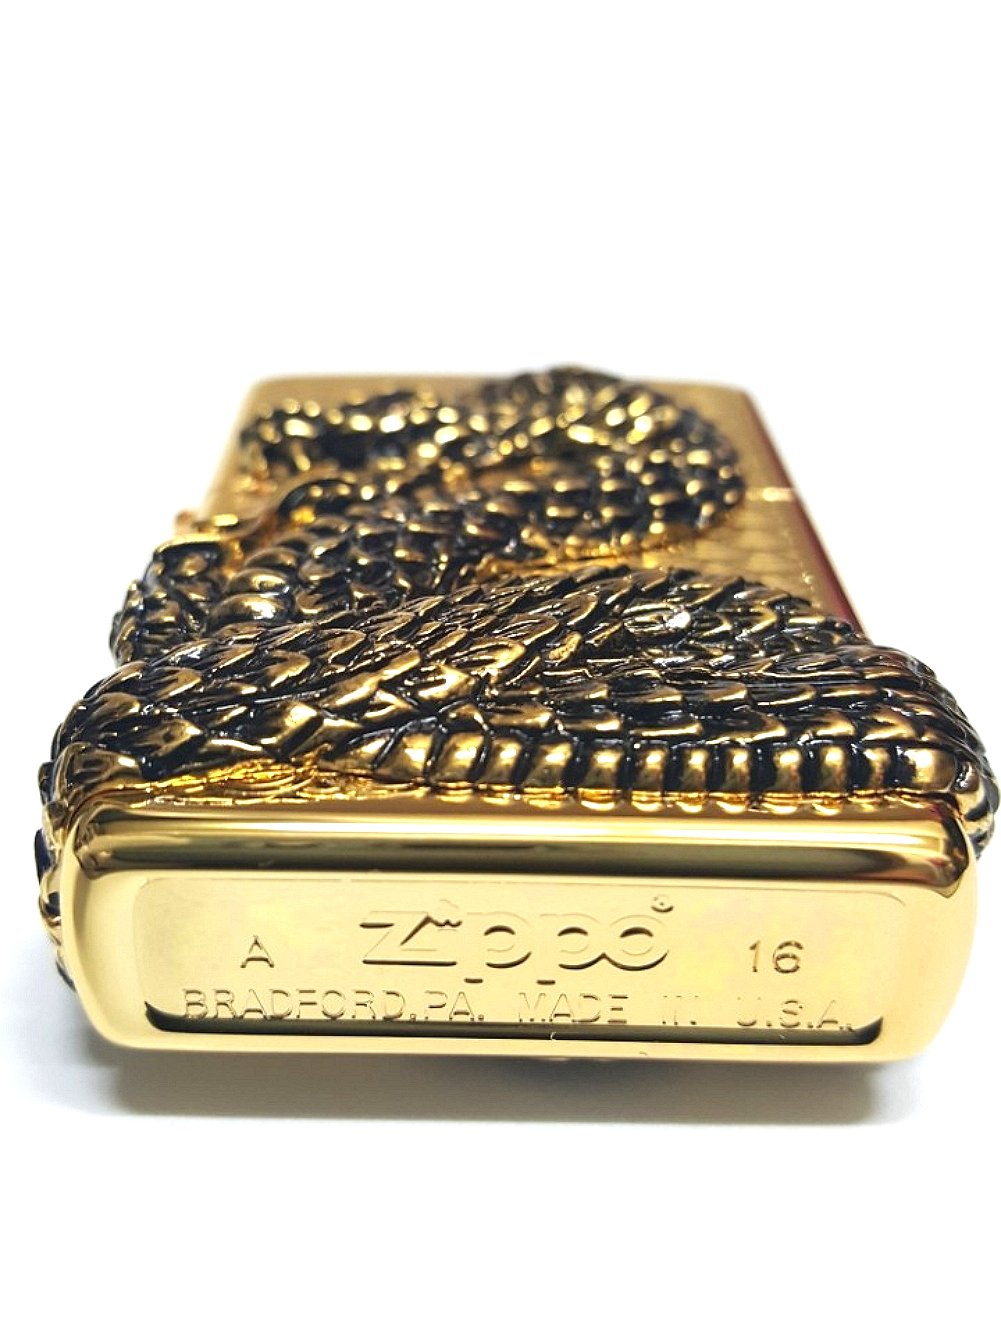 Zippo Snake Coil Gold Lighter / Genuine Authentic / Original Packing (6 Flints set Free Gift) by Zippo (Image #6)